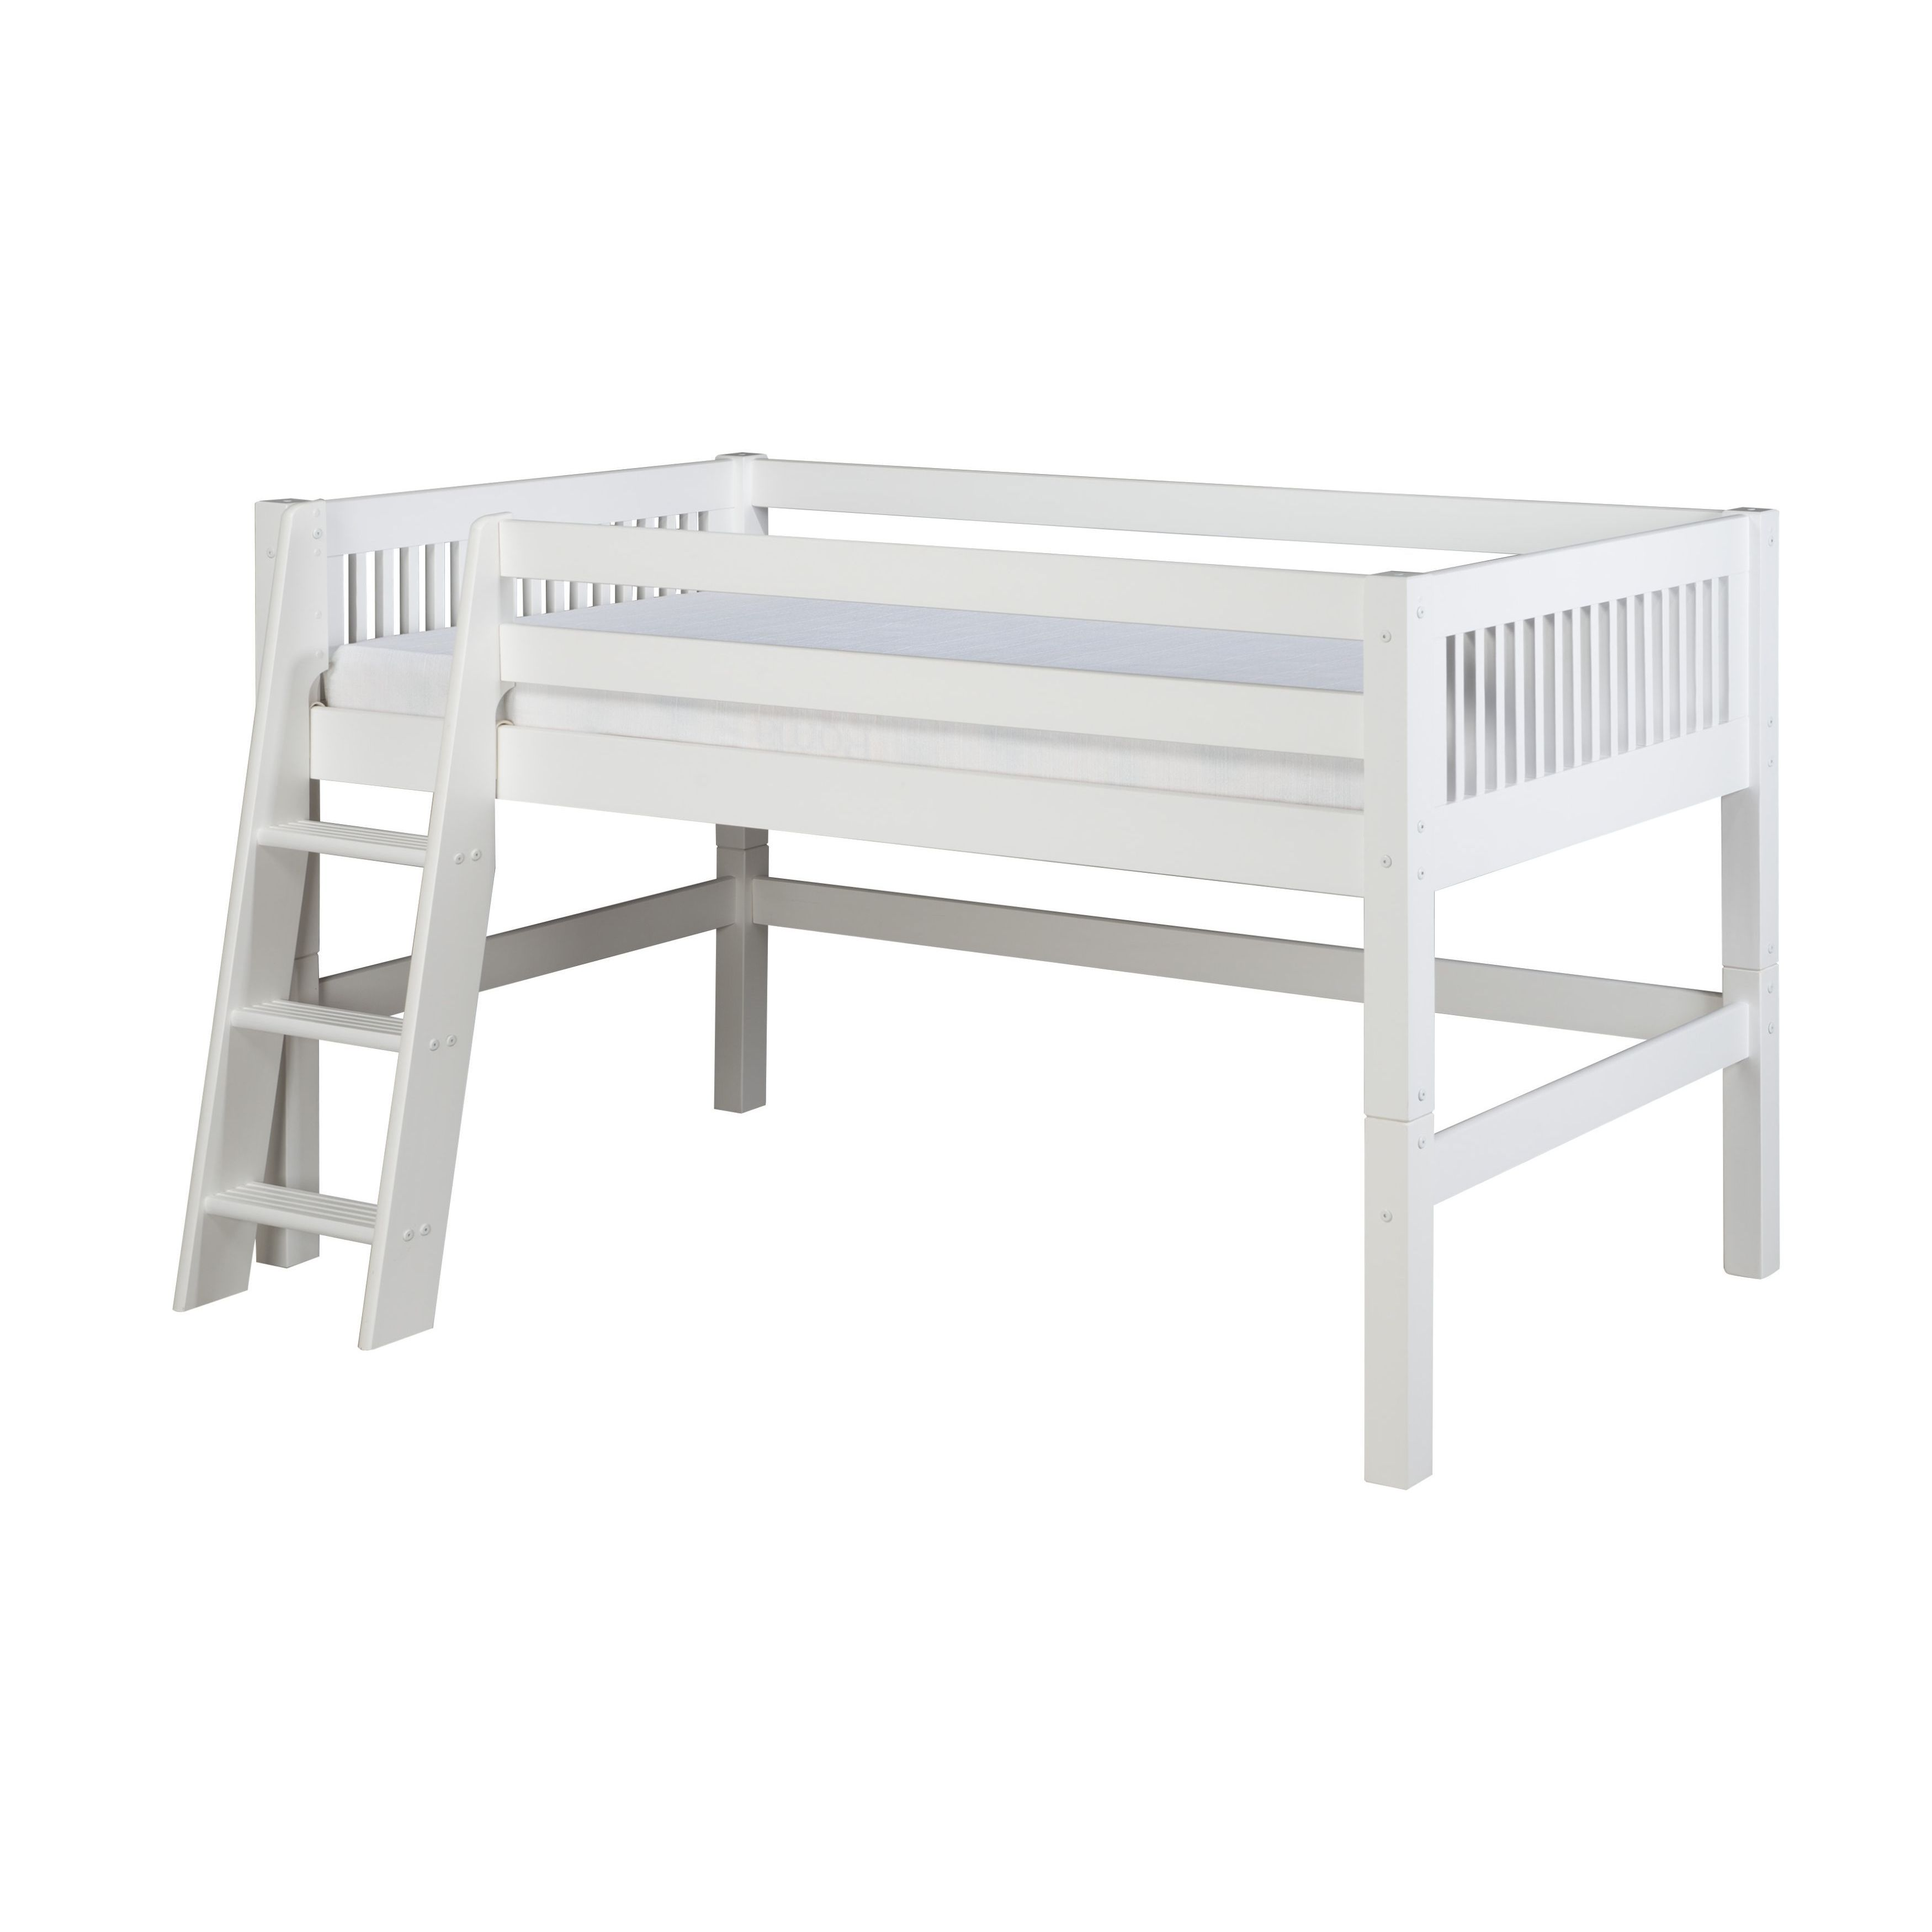 Camaflexi Twin Size White Finish Low Loft Bed With Mission Headboard Overstock 10734509